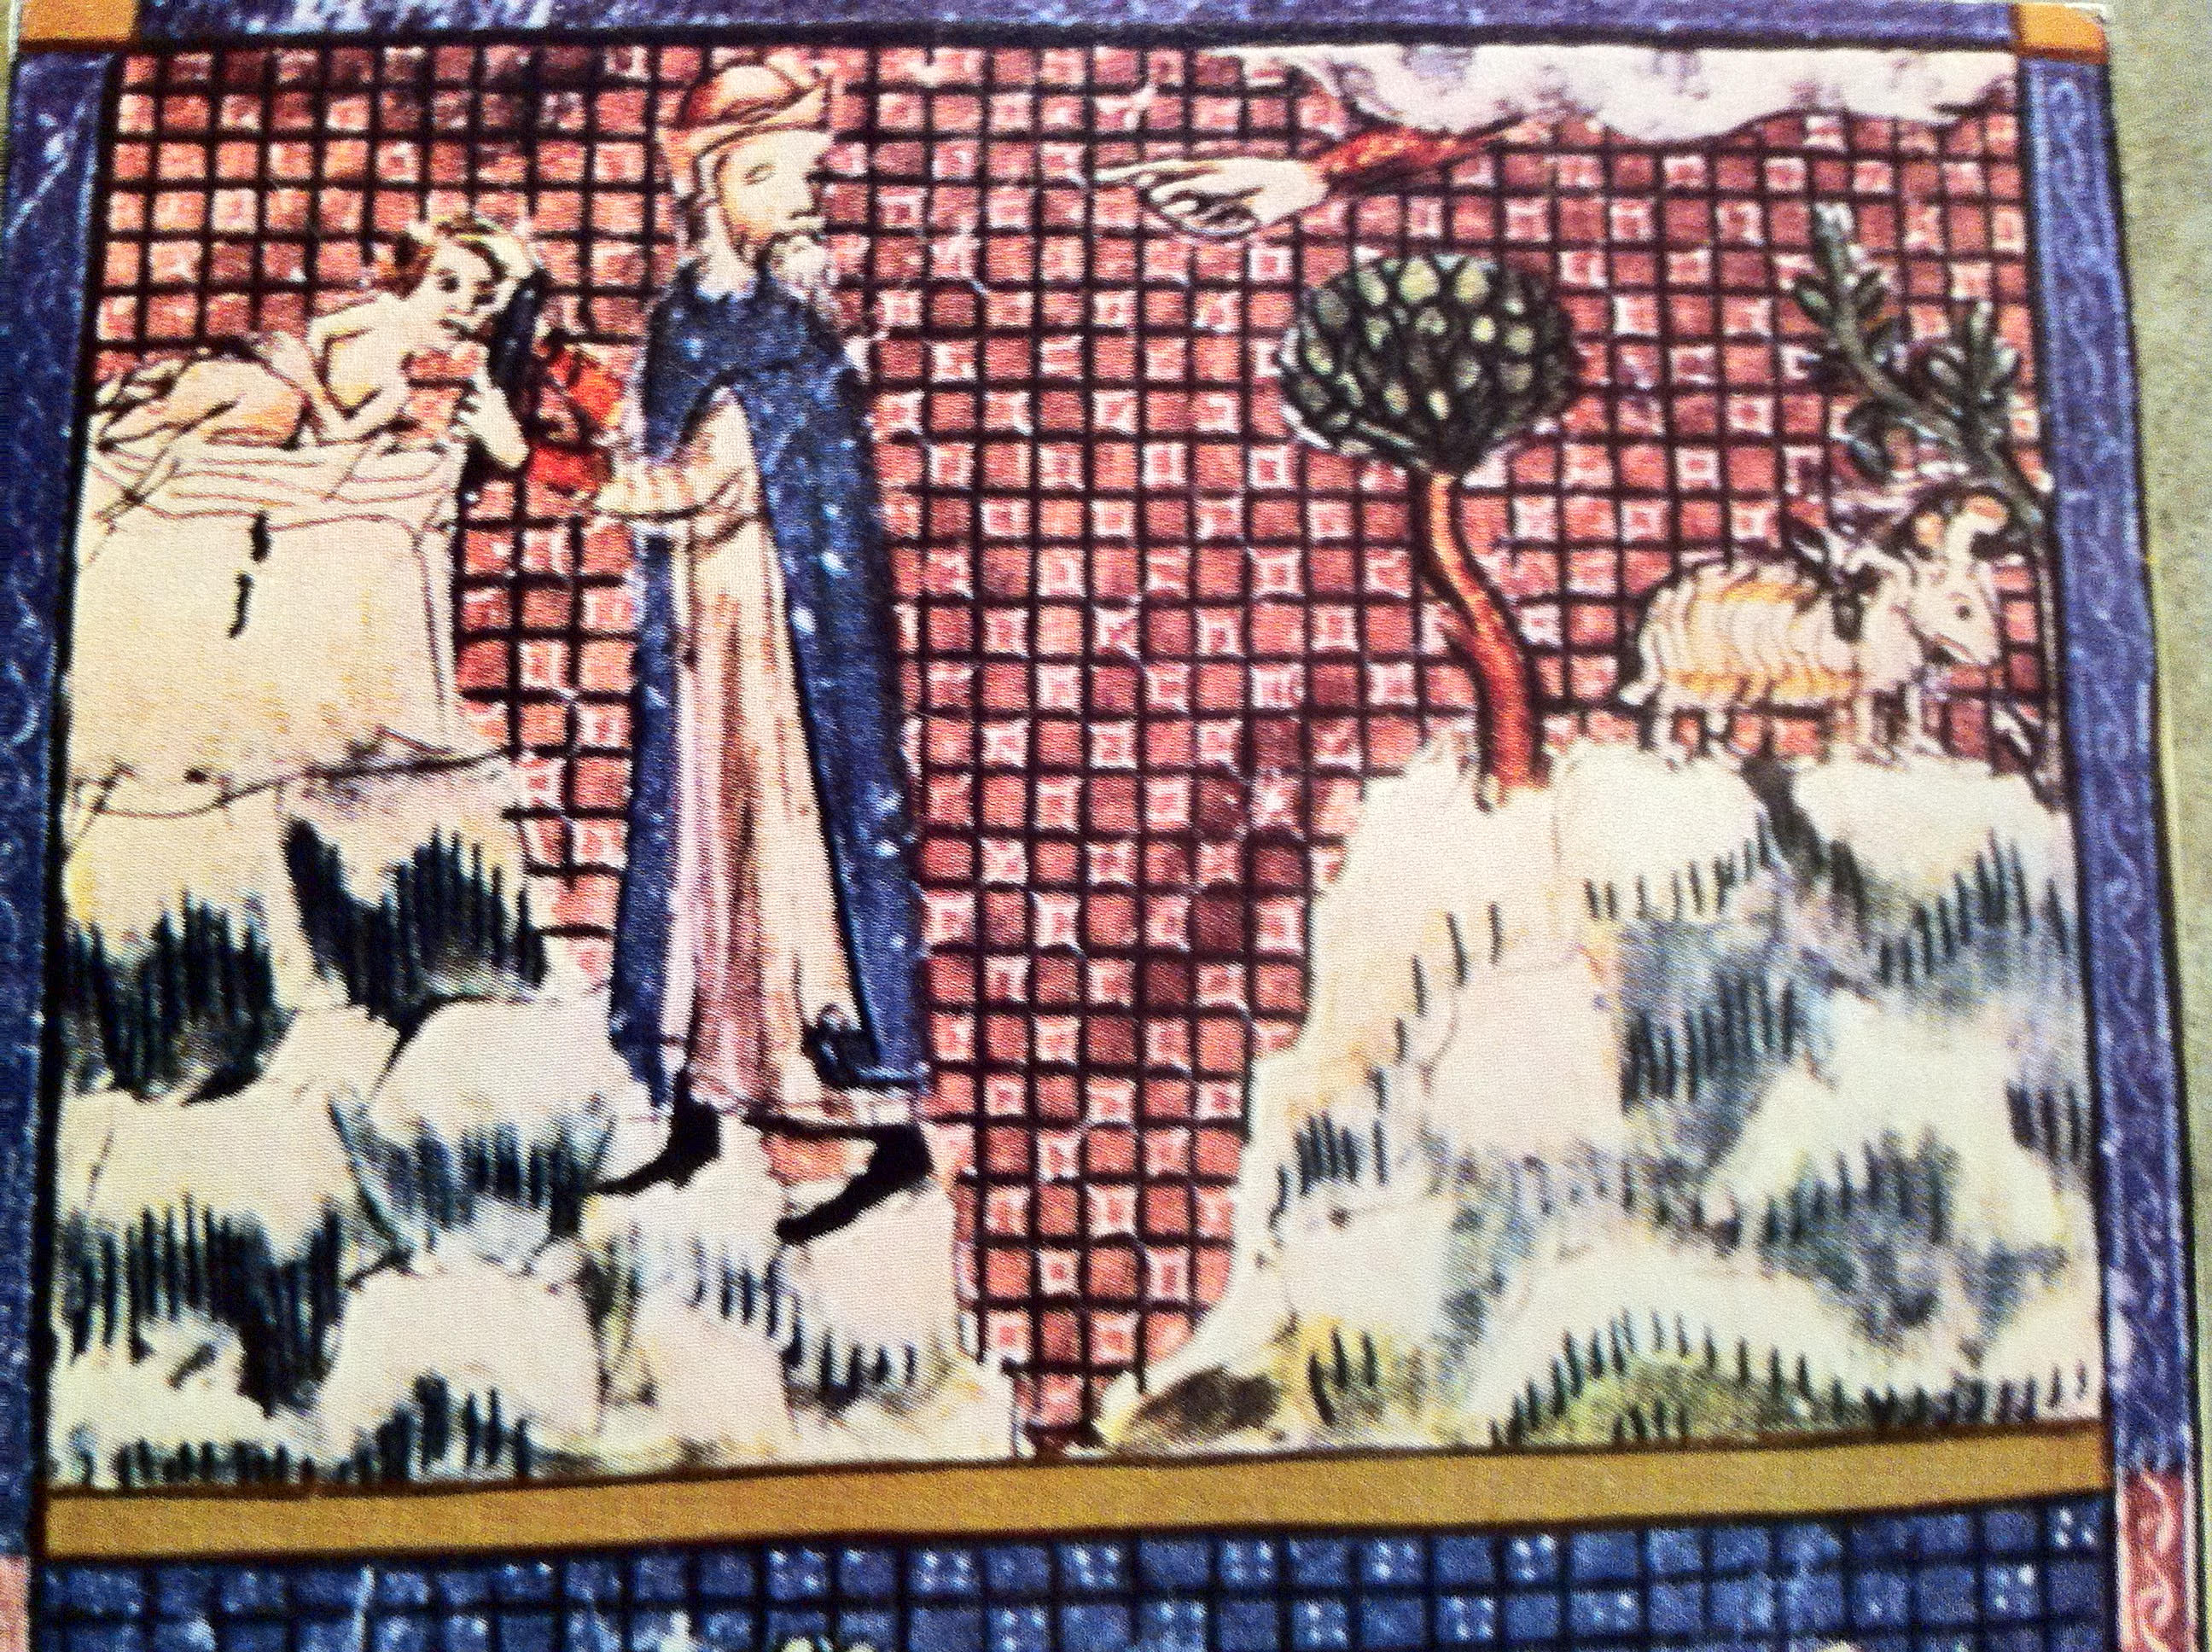 An illustration of the binding and sacrifice of Isaac from the Sarajevo Haggadah (mid-14th century).